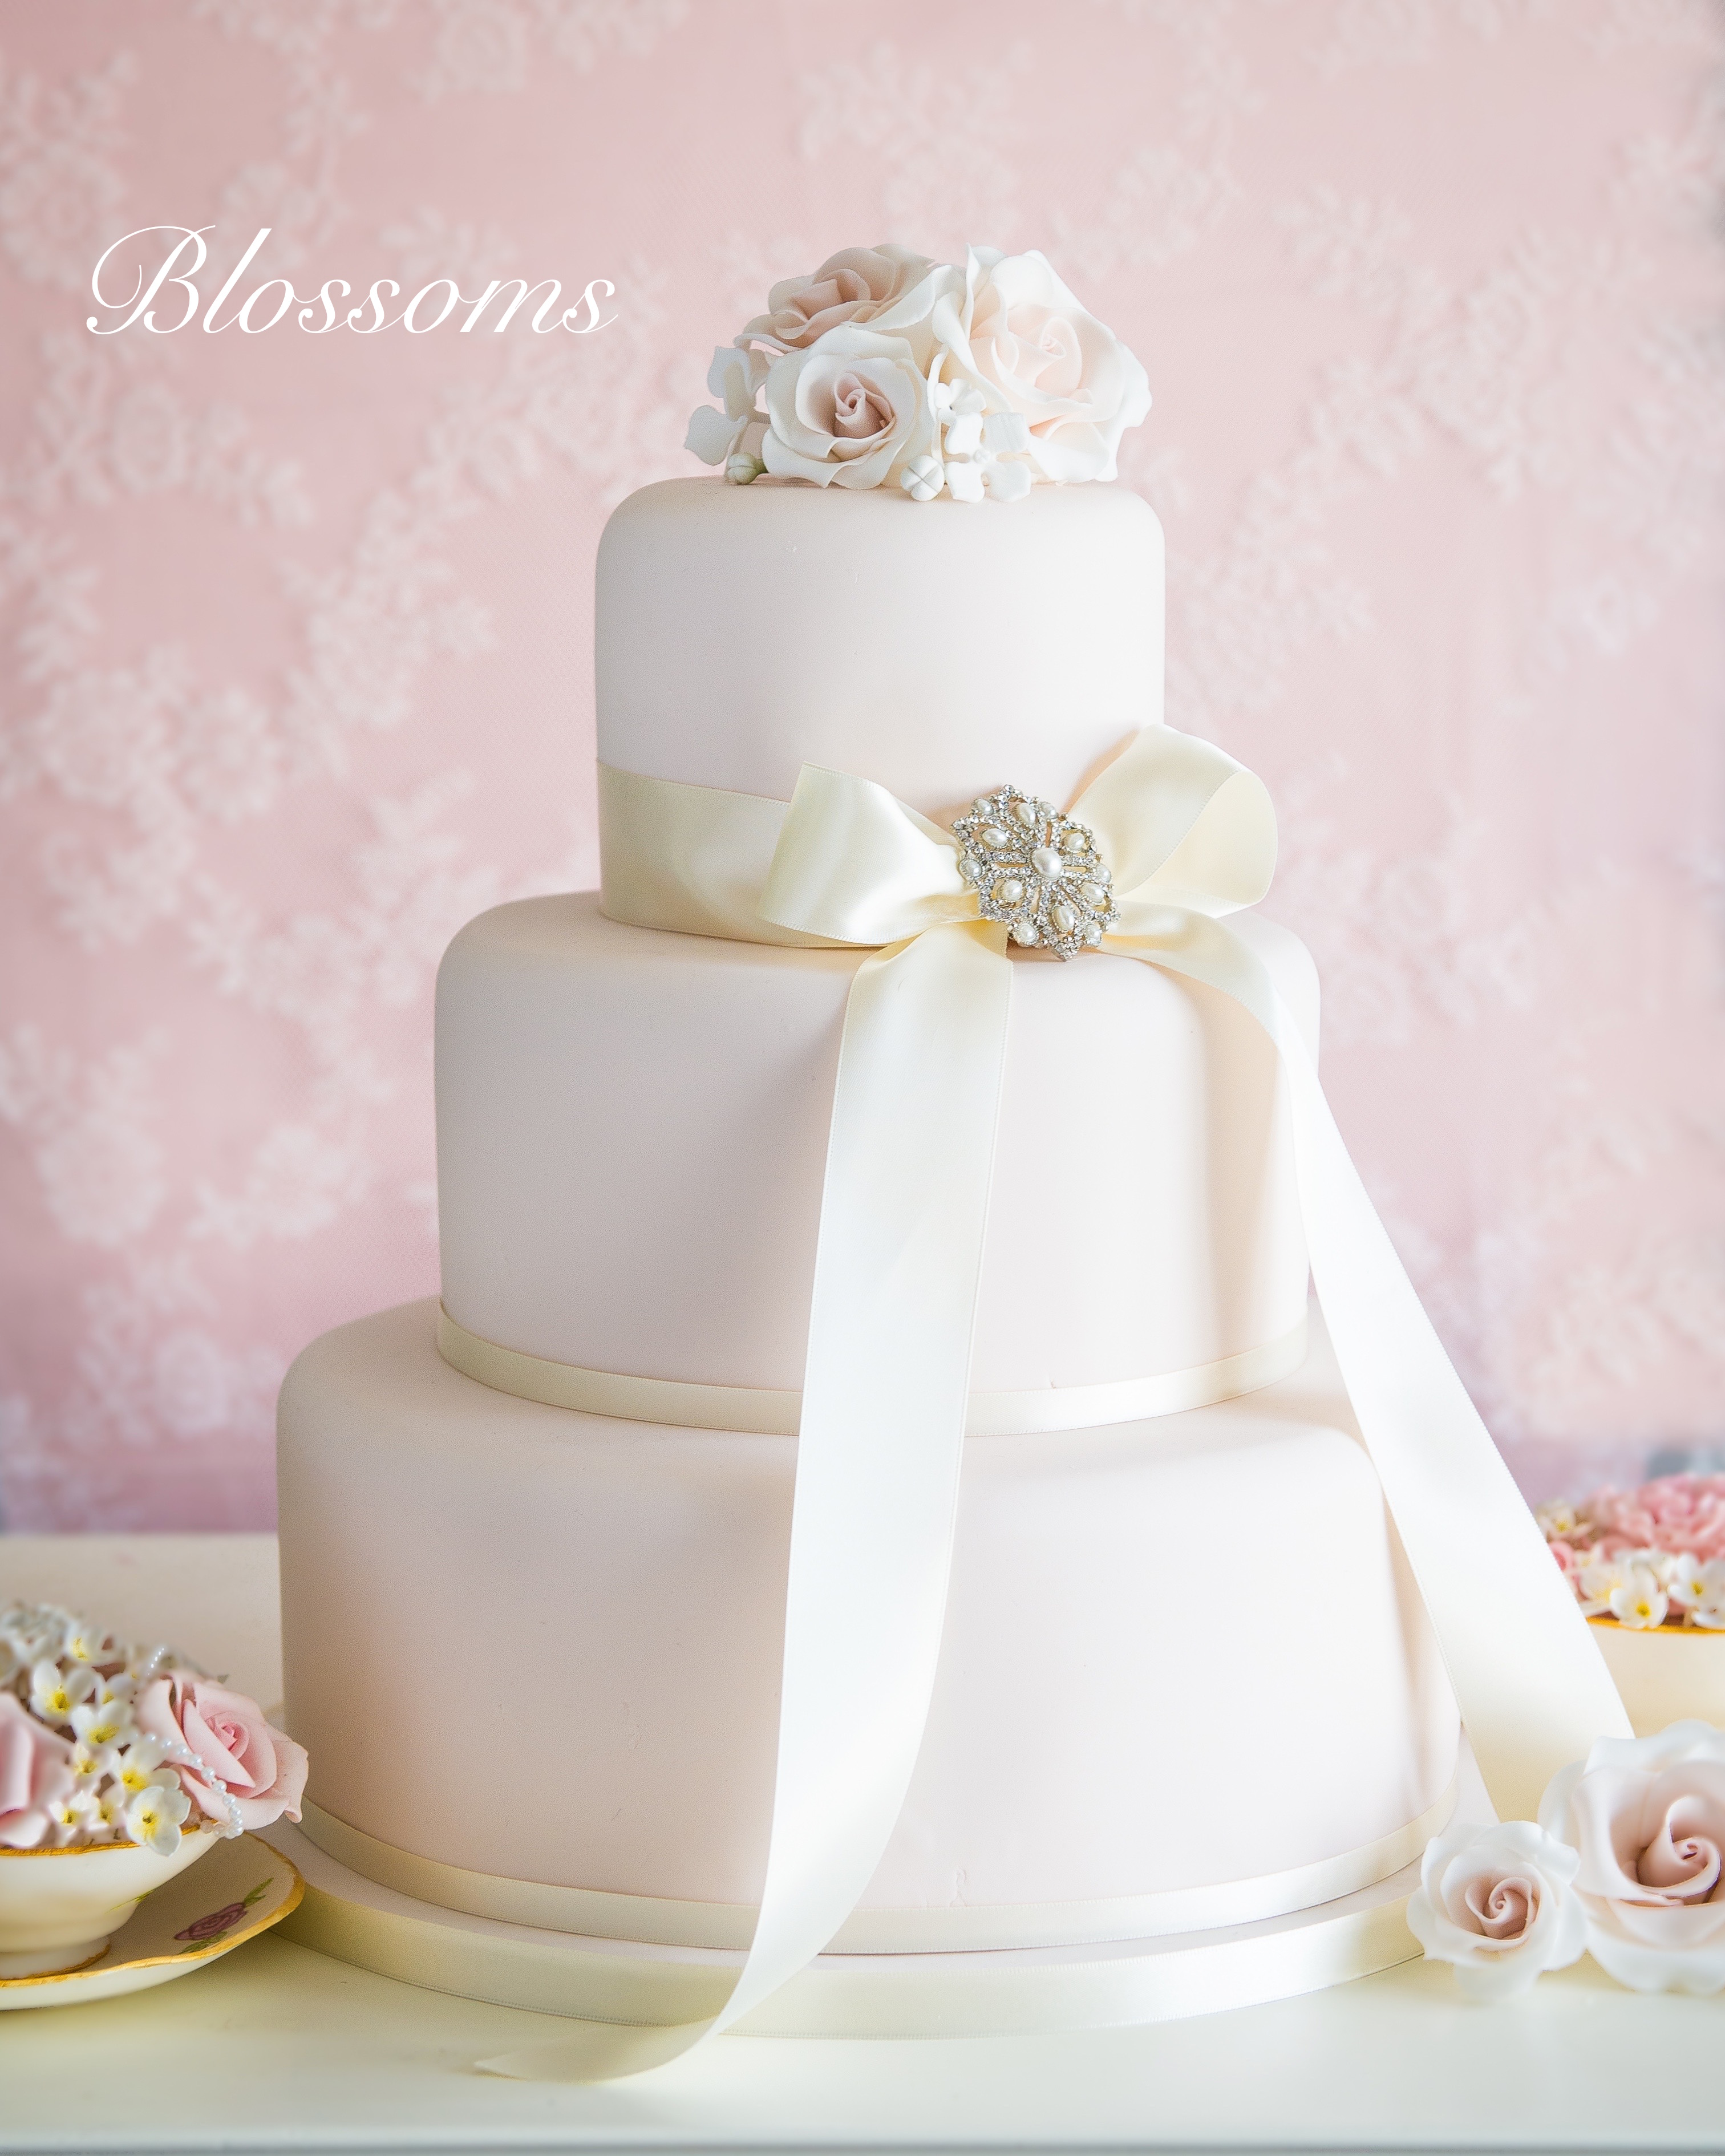 Simply Elegant Wedding Cakes - Hall of Cakes